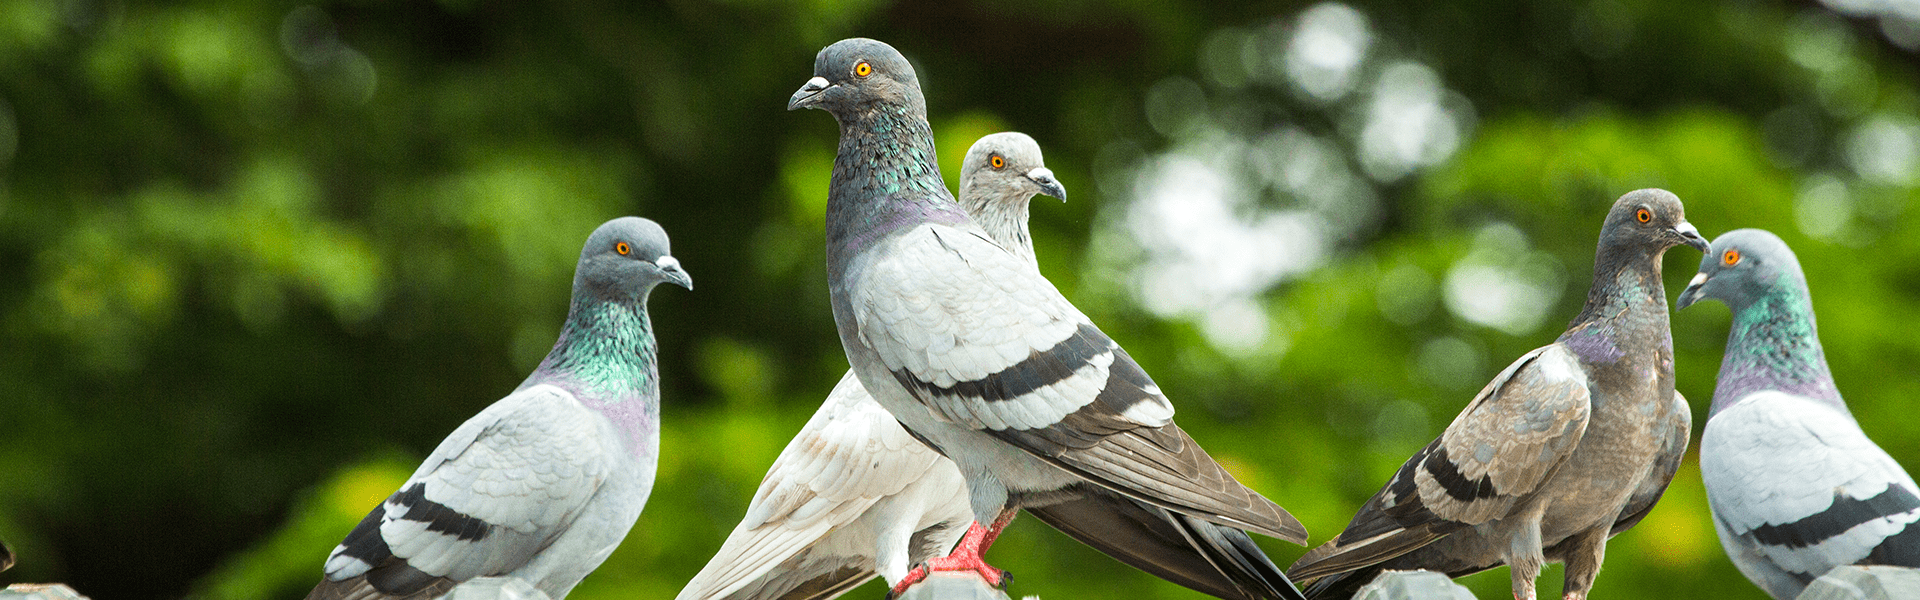 pigeons perched on business